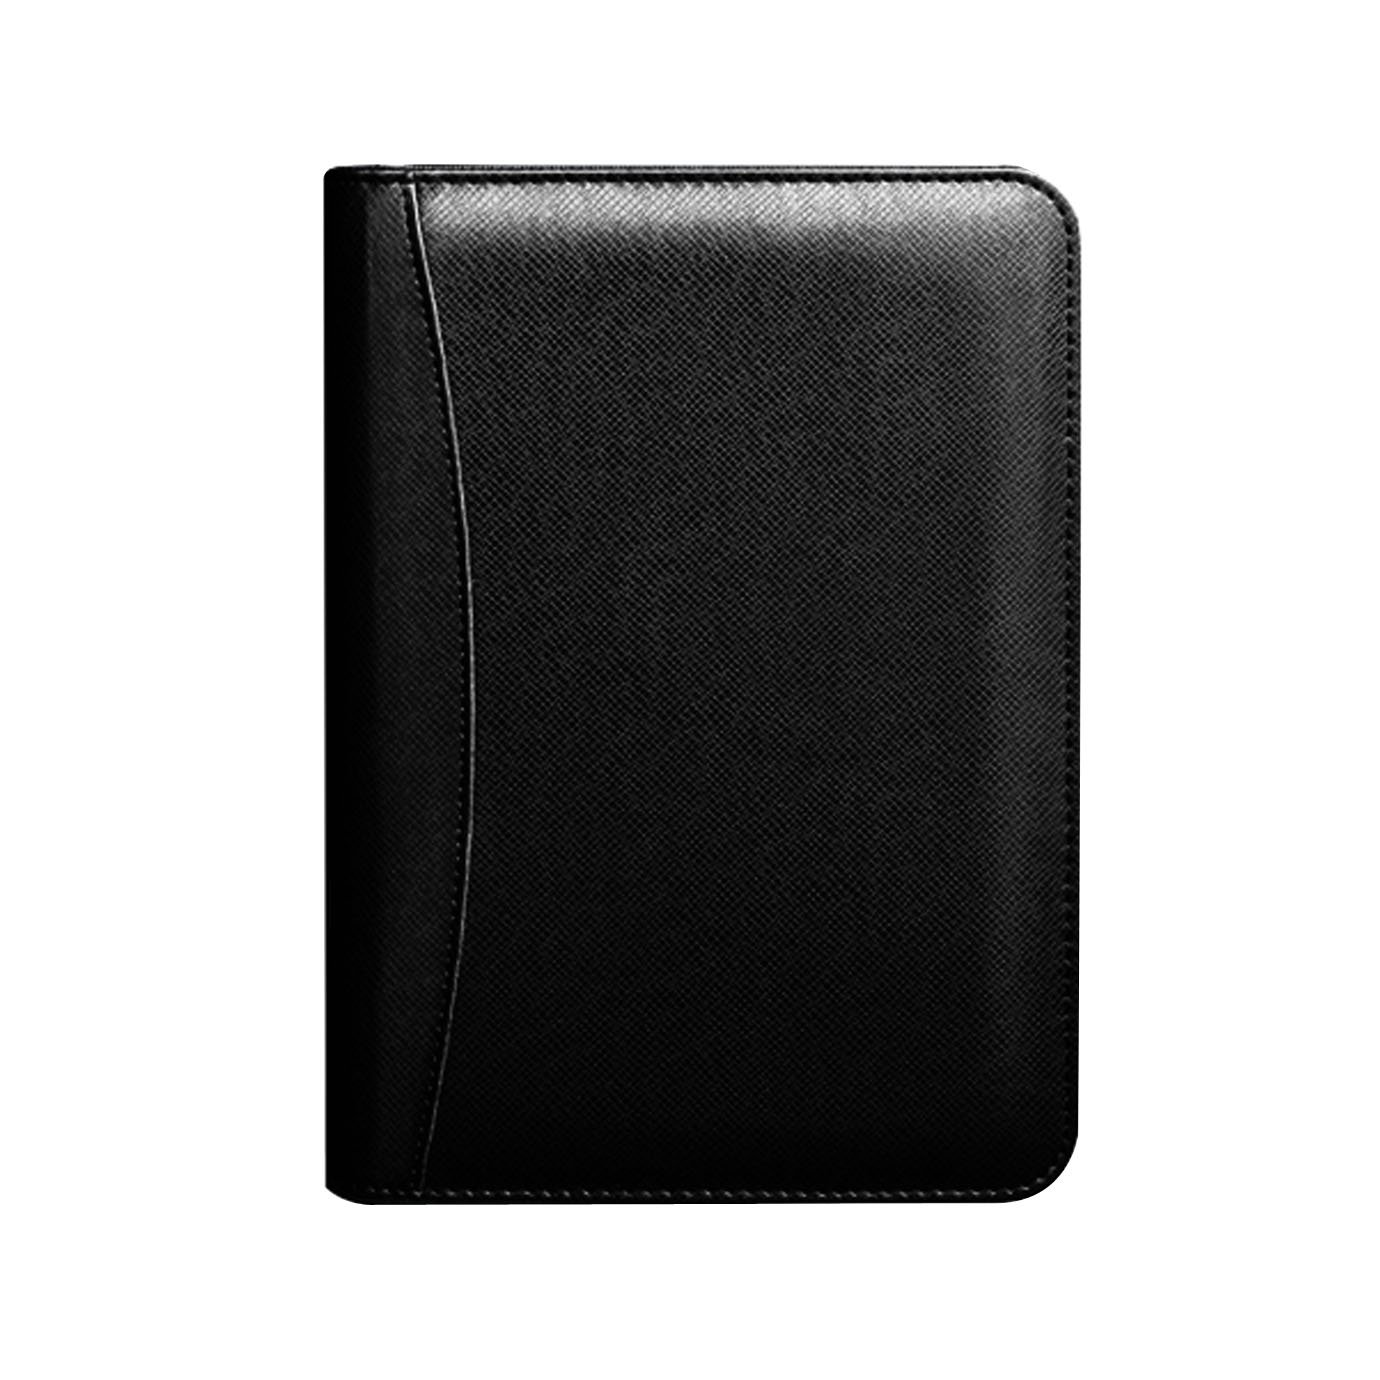 Felice PU Leather Zipper Business Notebook with Calculator, Card Slot, Pen Holder and Spiral Bound Loose-Leaf Business Notepad (Black)